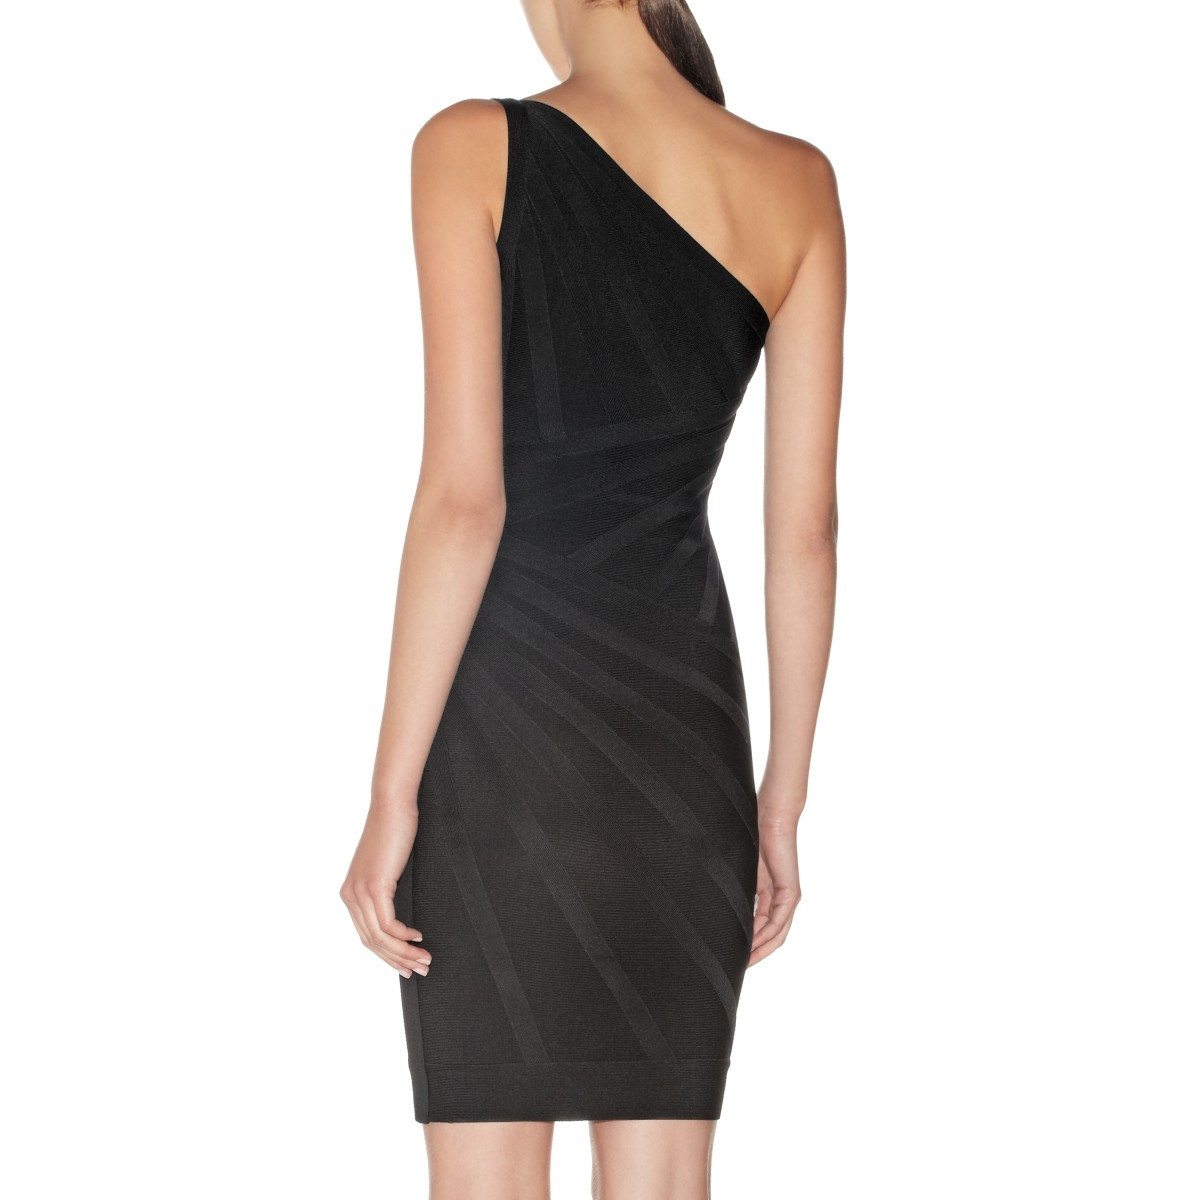 Herve Leger Luz One-Shoulder Bandage Dress